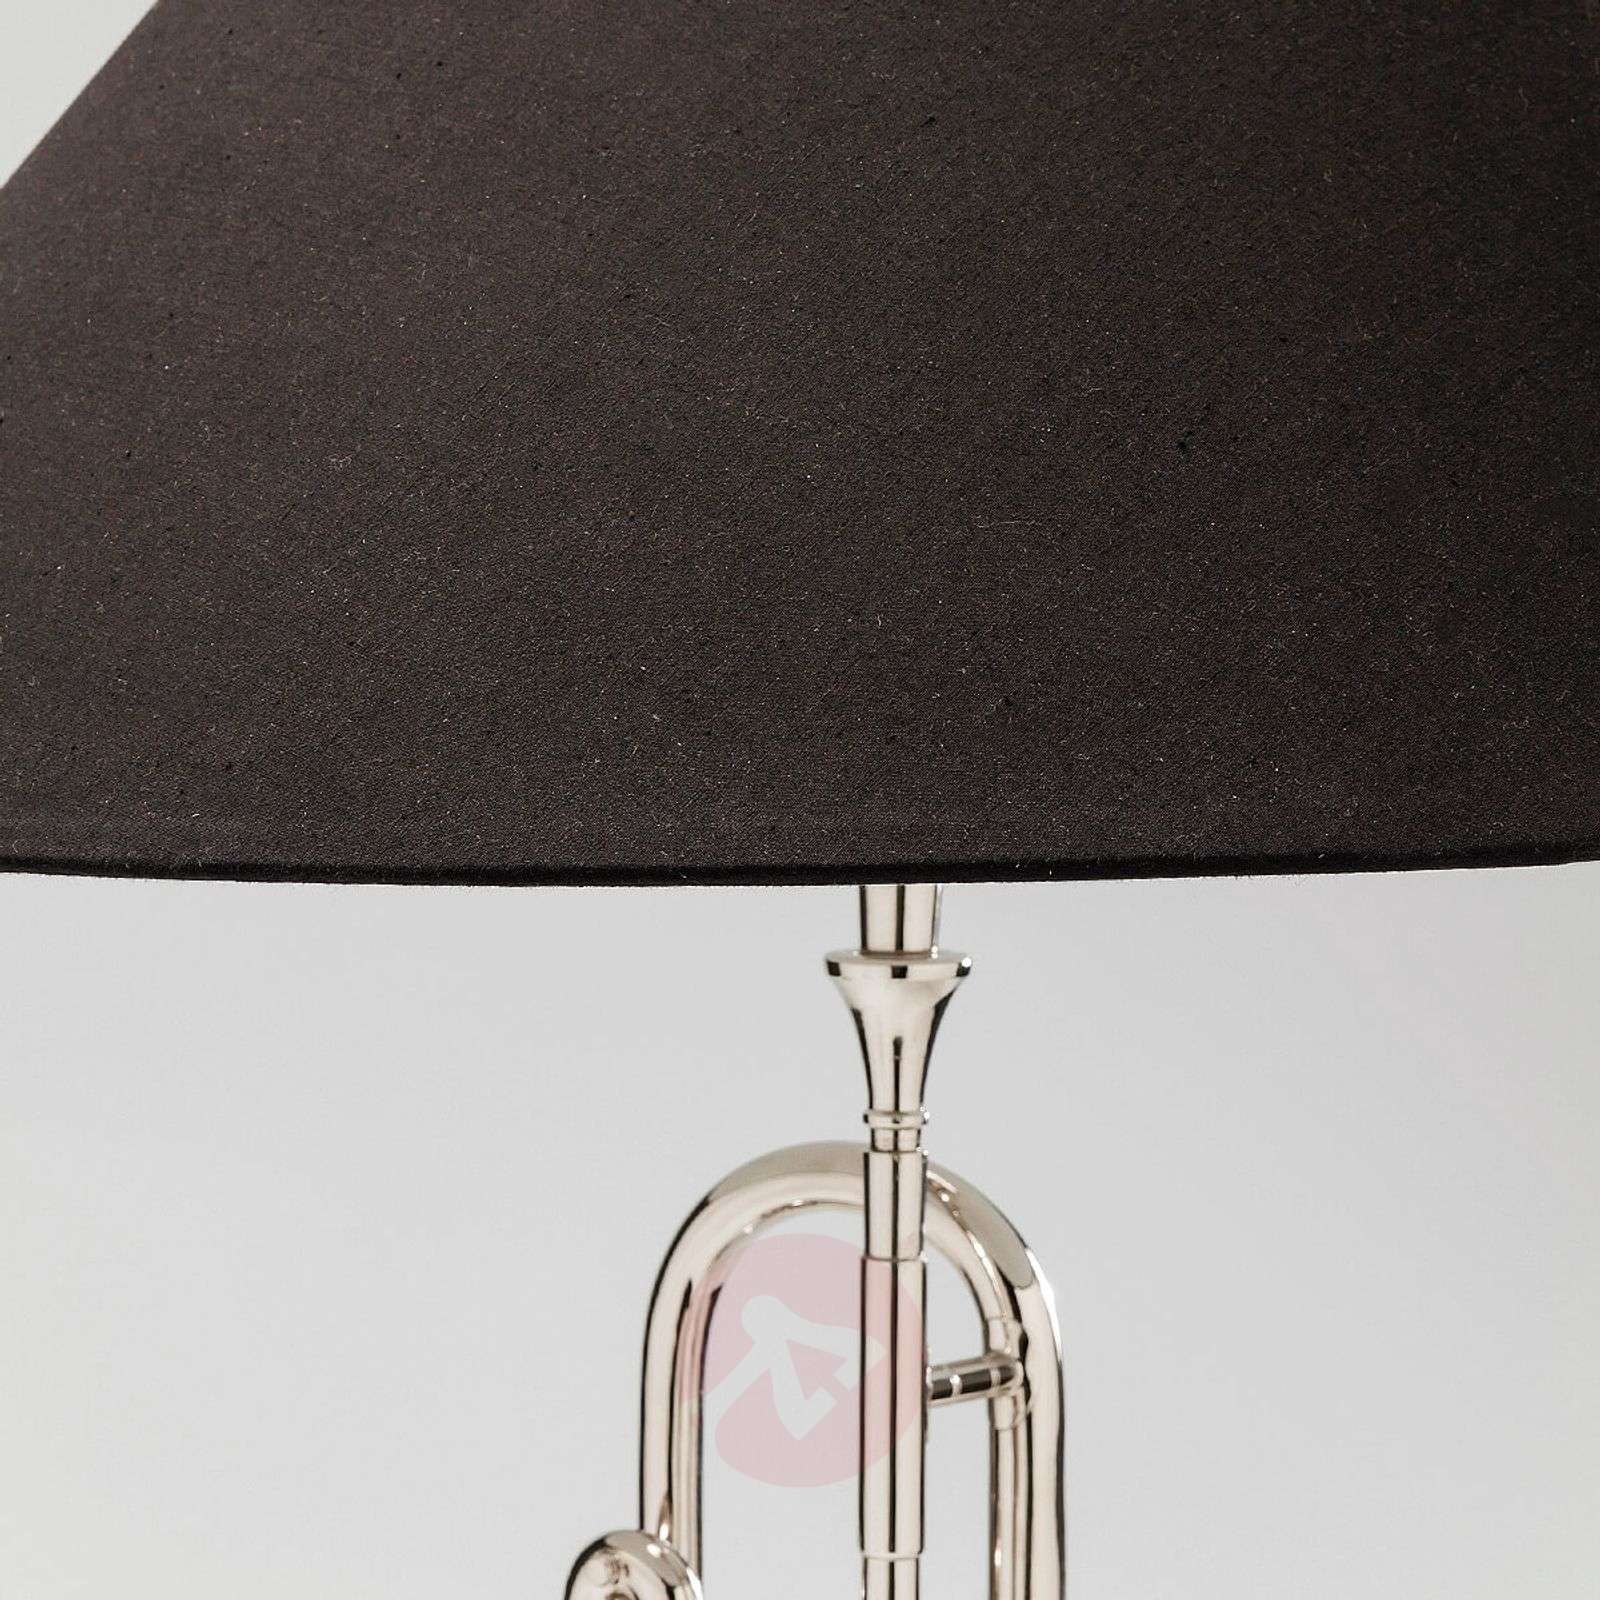 KARE Trumpet Jazz fabric table lamp in silver-5517521-01